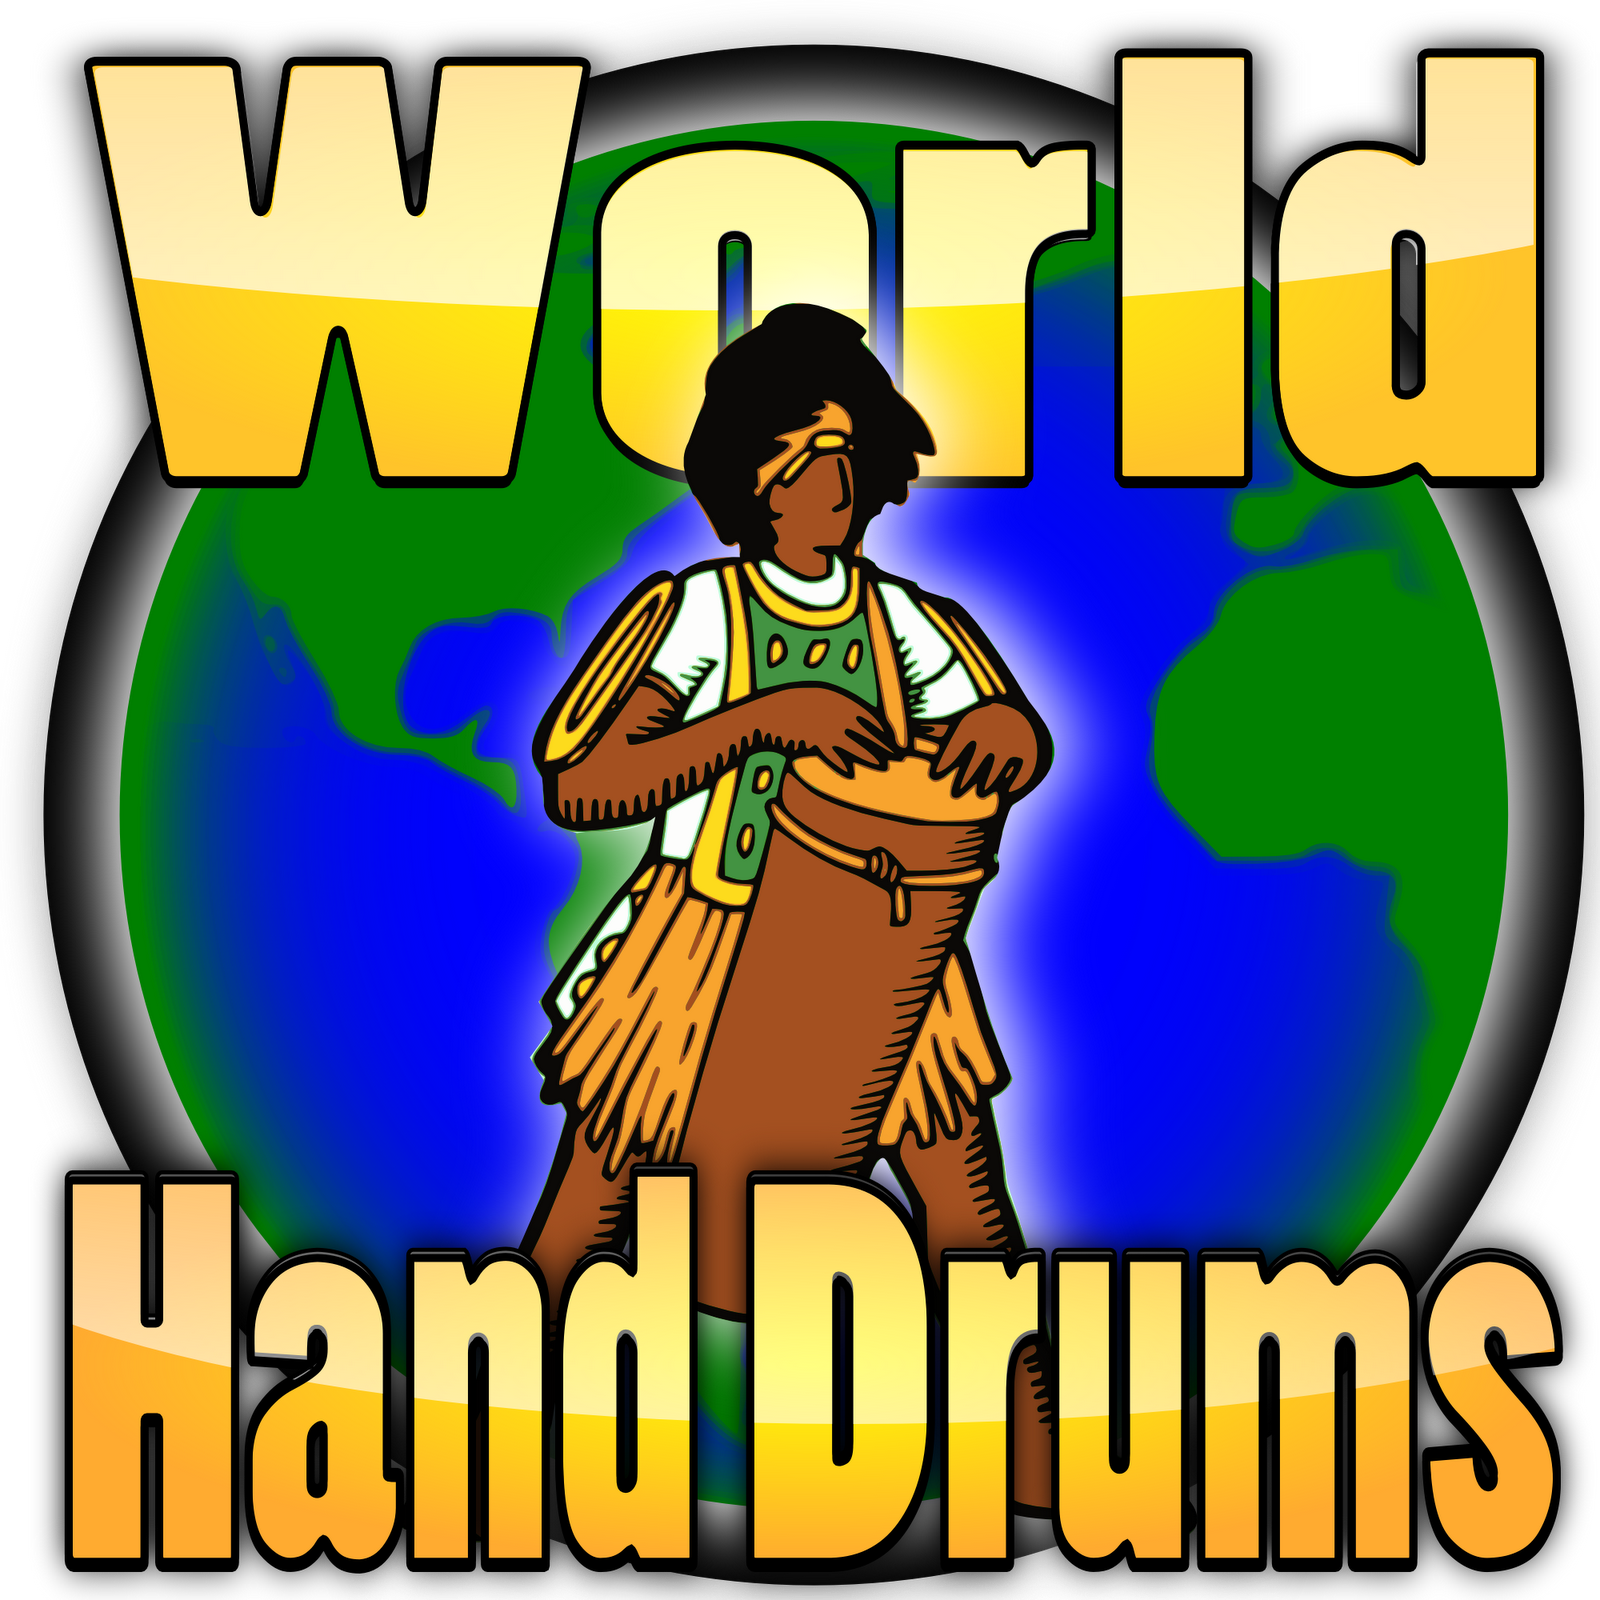 history of the conga drum Chapter 1 - a history of the conga drum world percussion instruments have recently gained a great deal of popularity, and one of the largest upswings has been the interest in conga drumming in the 20.